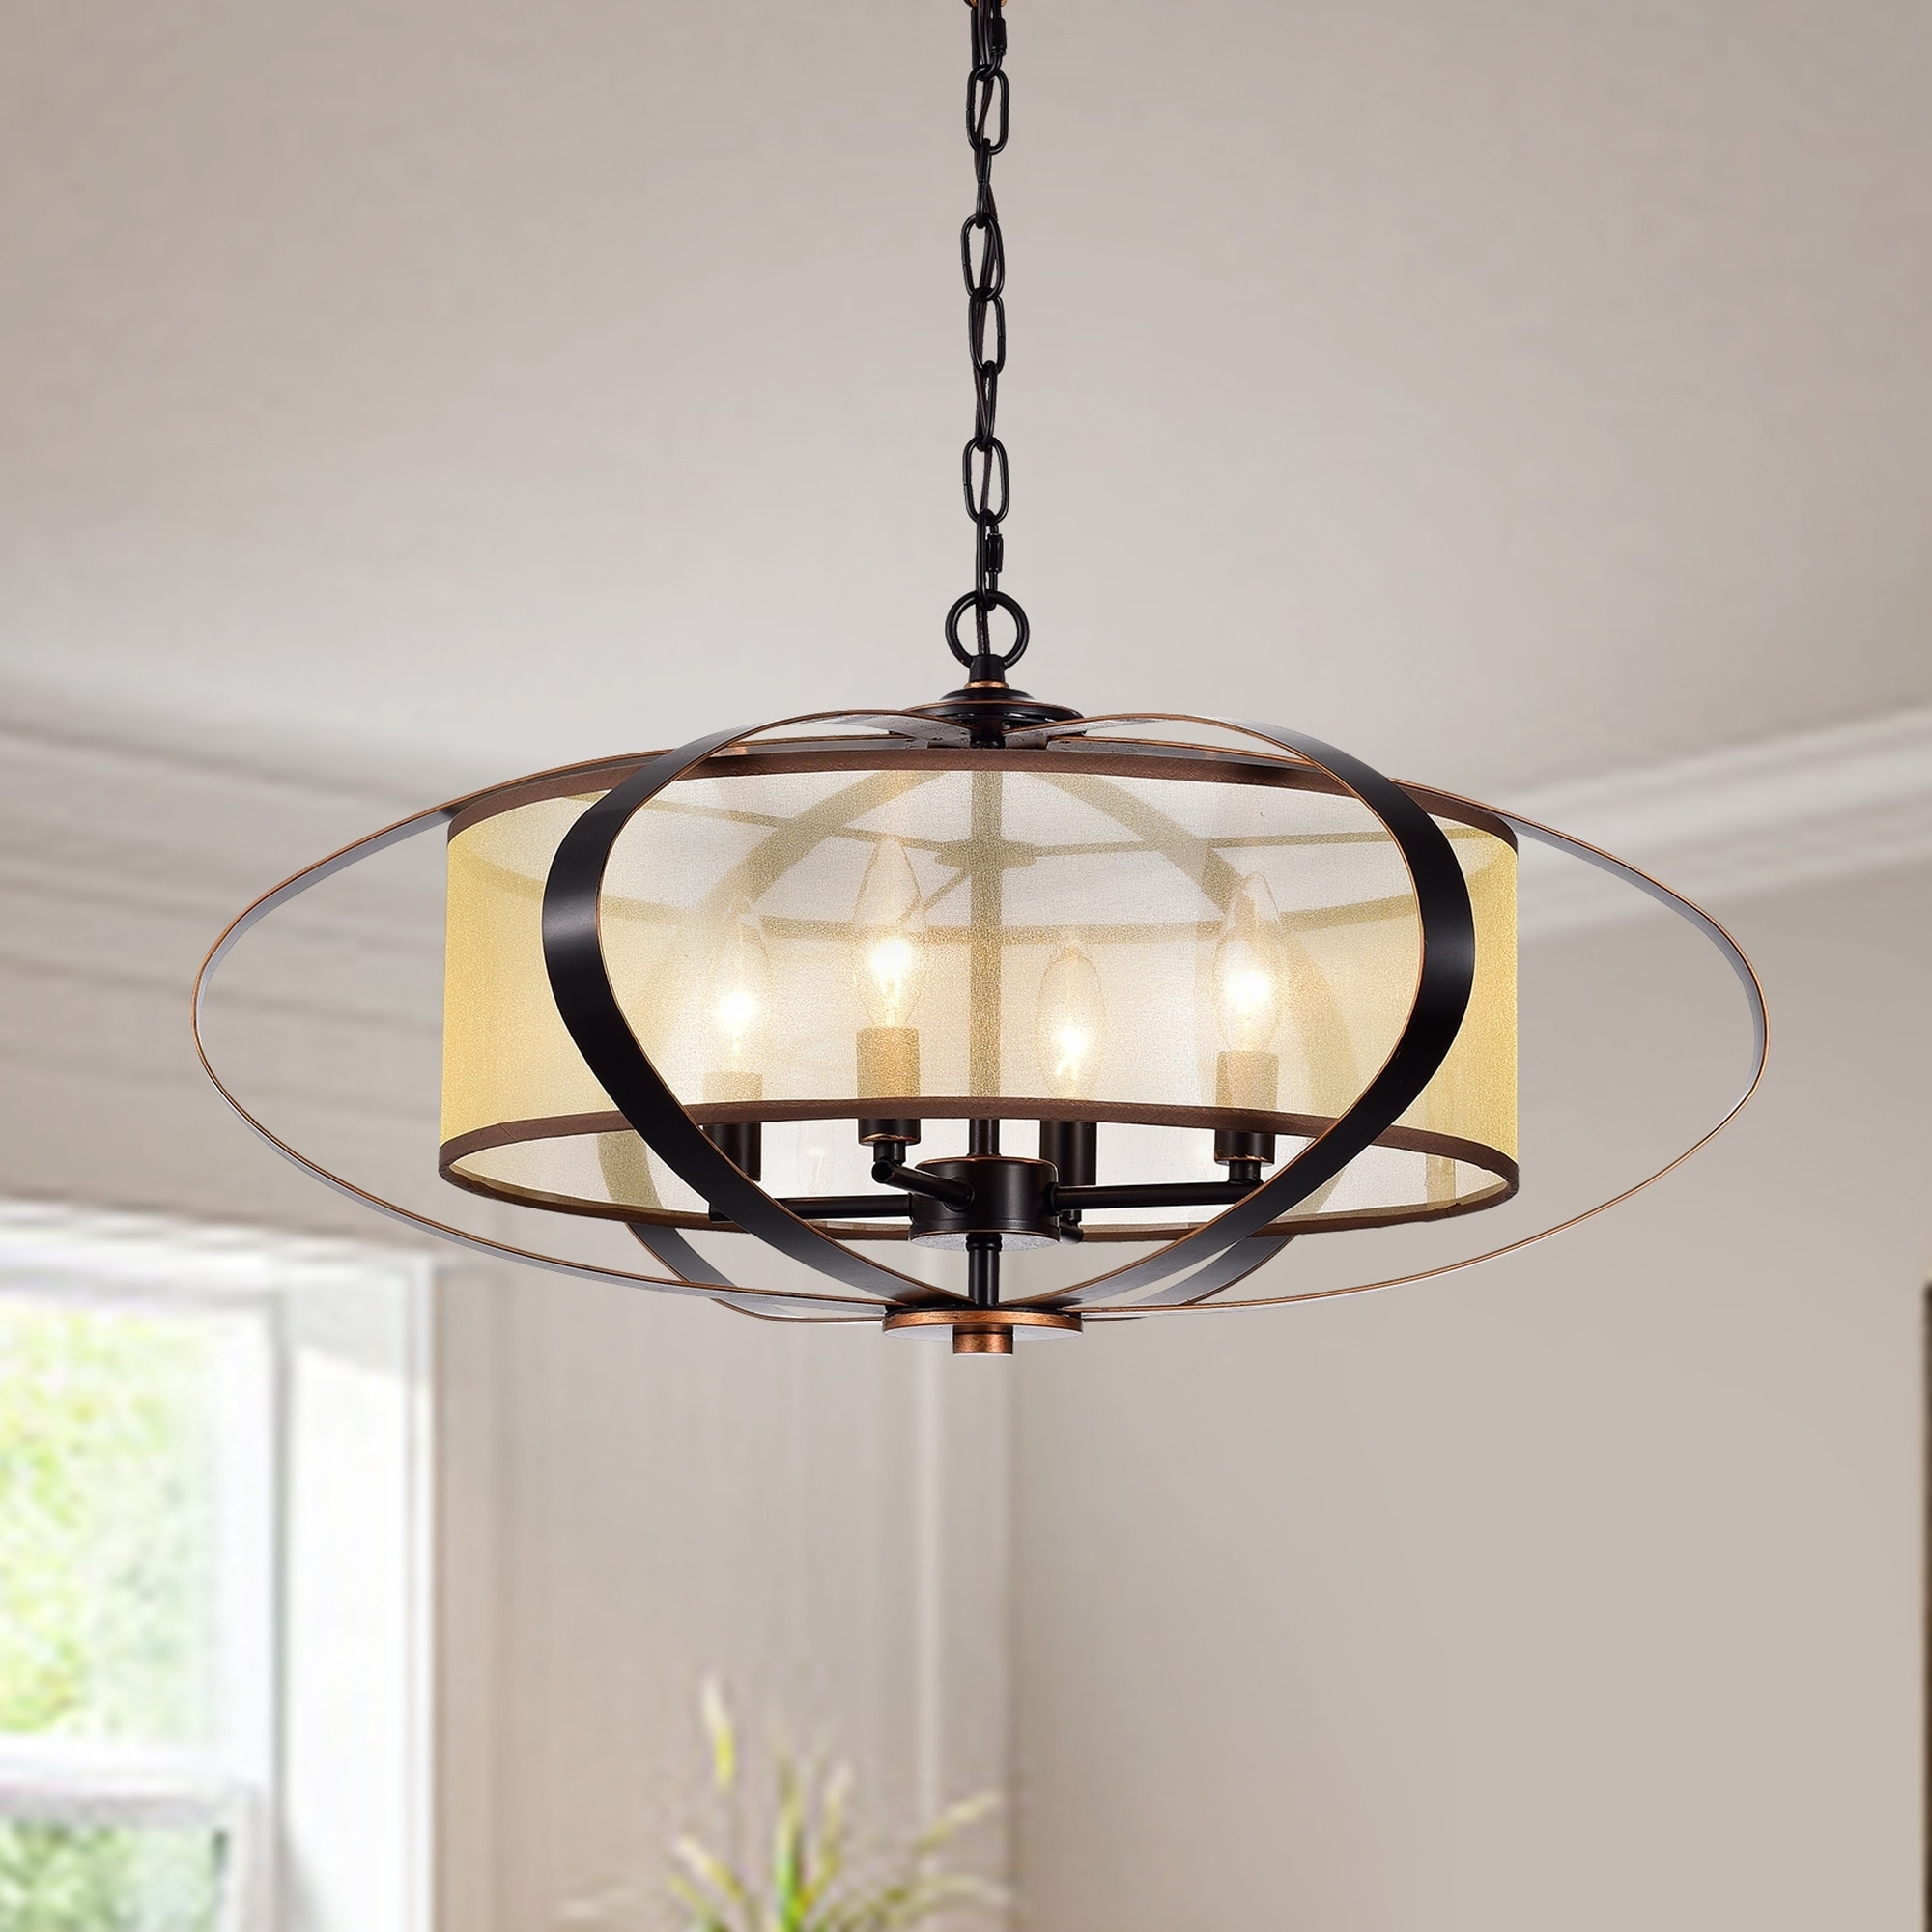 Image of: Shop Black Friday Deals On Marielle Oil Rubbed Bronze 4 Light Globe Pendant With Fabric Shade Overstock 21381937